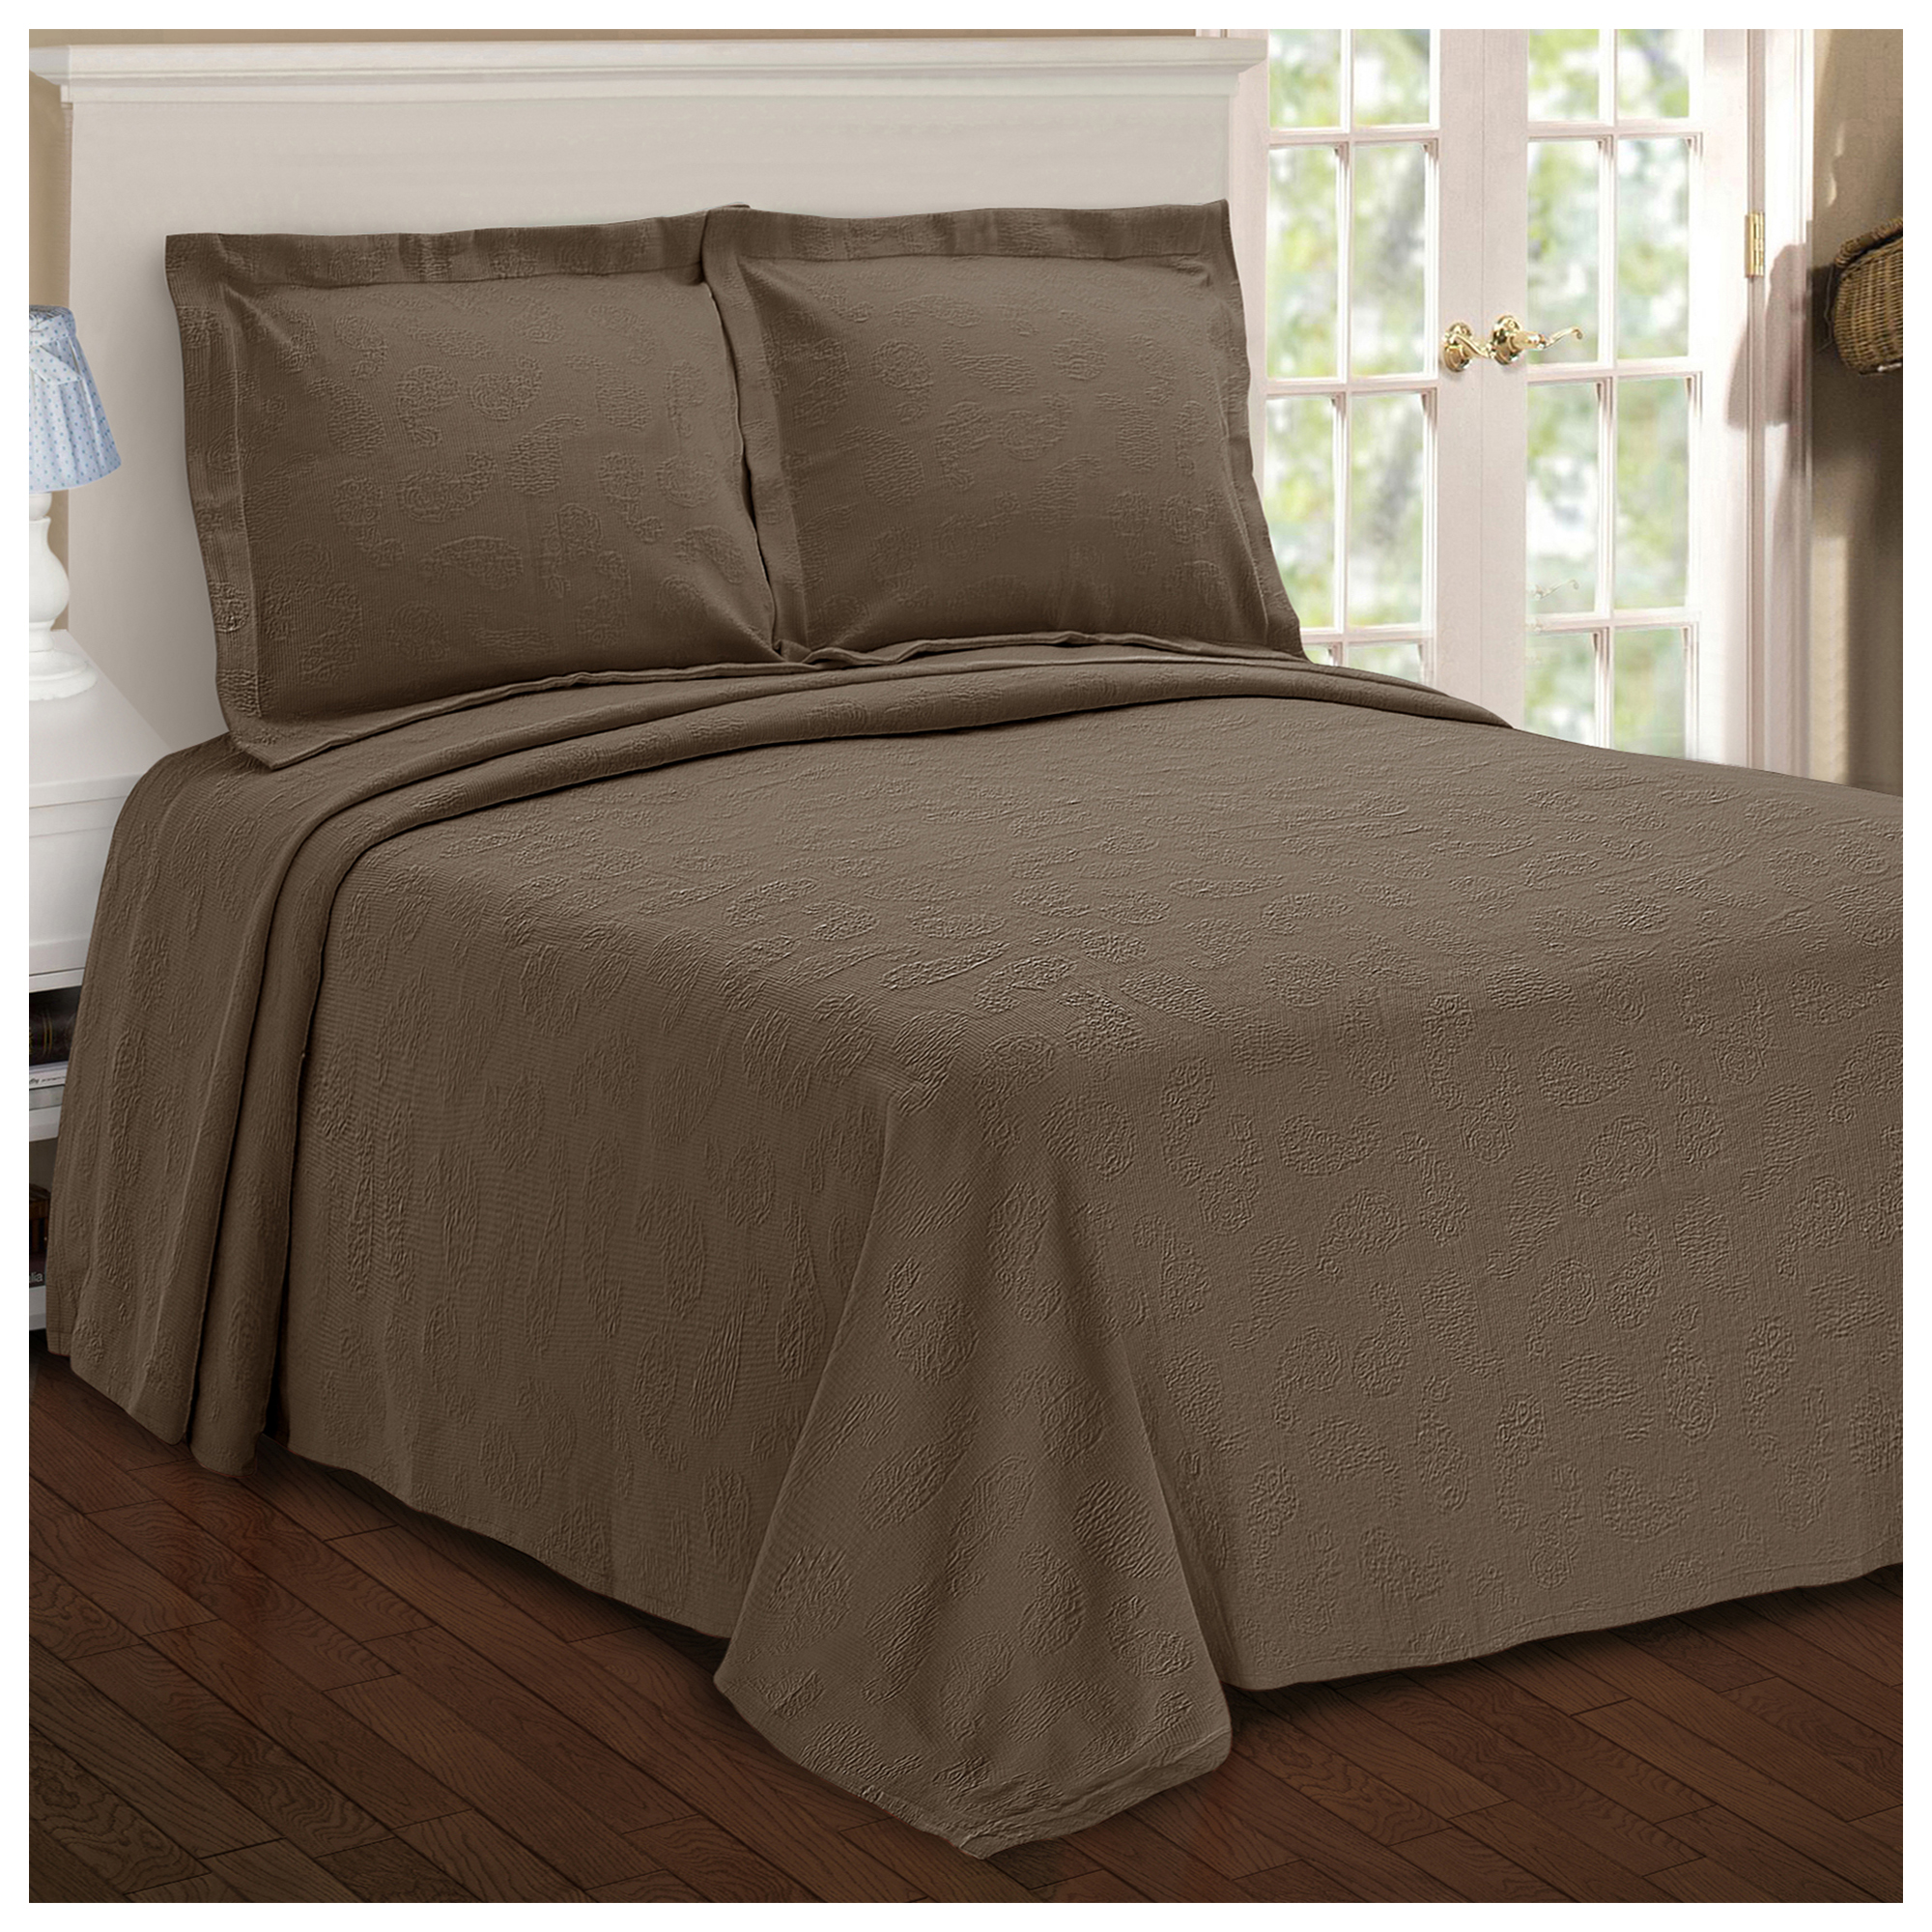 bath coverlet today bed bedding matelasse set piece product free shipping overstock